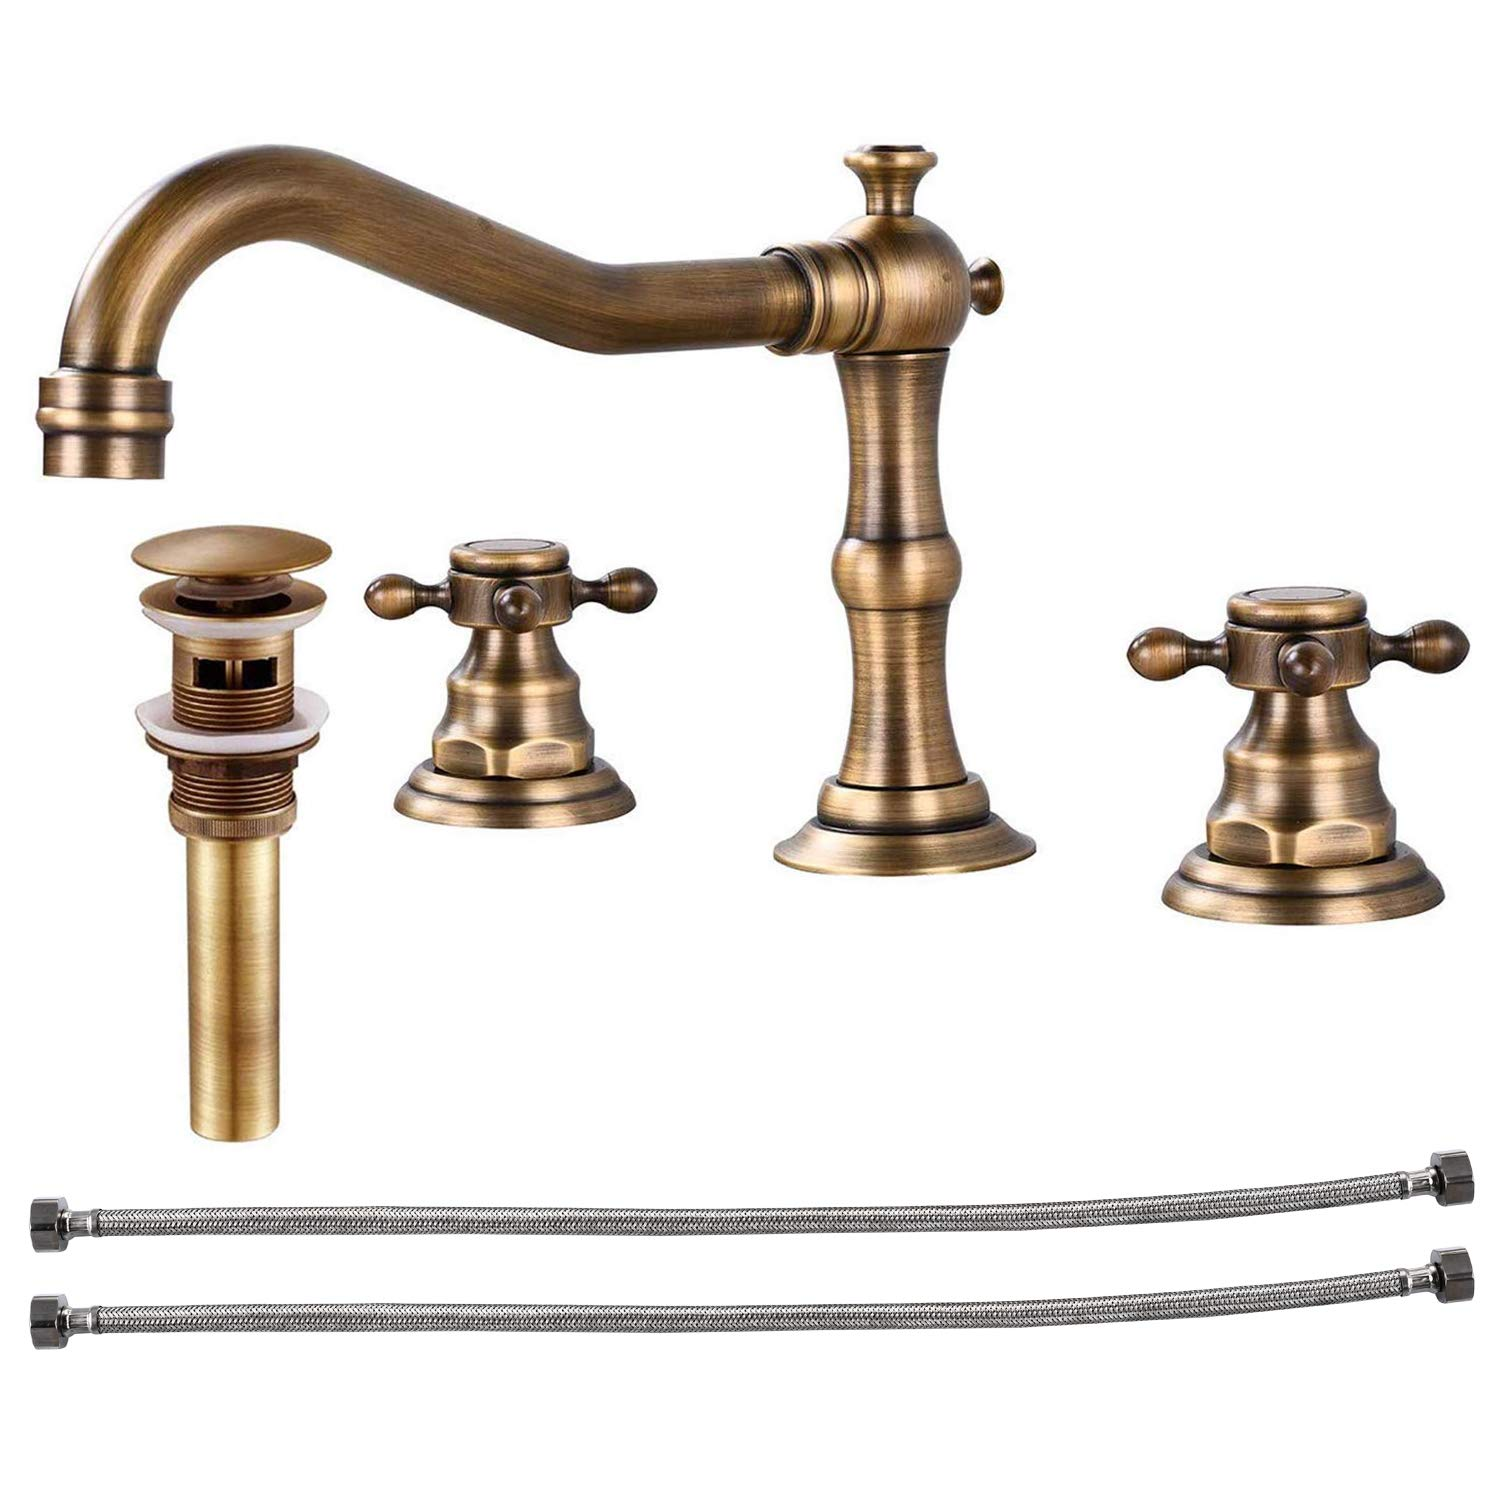 Widespread Bathtub Faucet Double Handle Mixer Tap for Bathroom Brushed Gold Antique Brass Three Hole Deck Mount Hot Cold Water Matching Pop Up Drain with Overflow